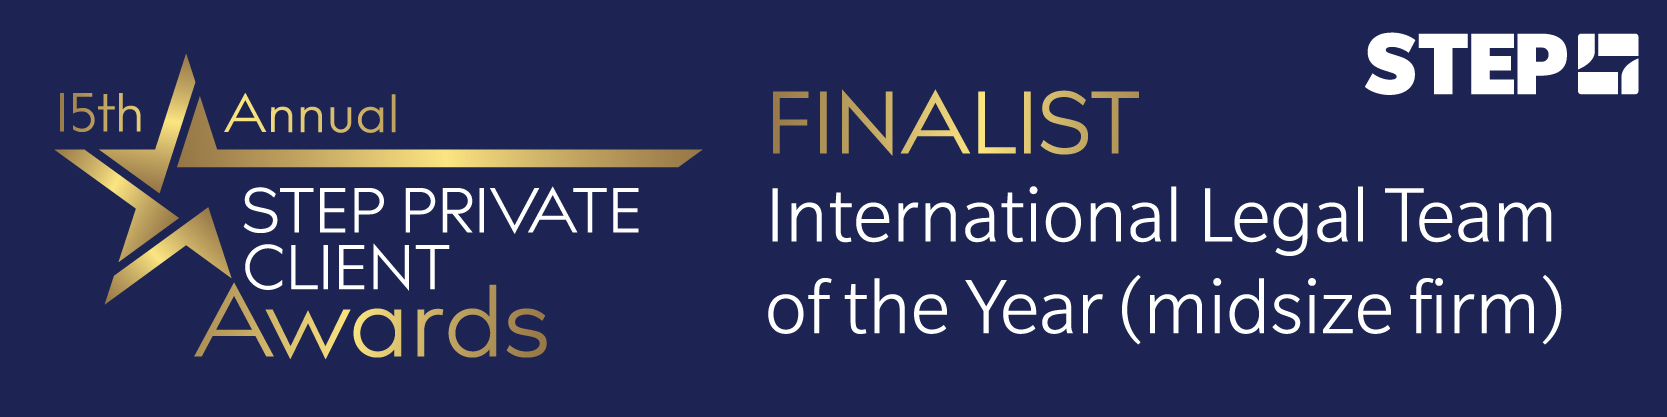 Forsters shortlisted for International Legal Team of the Year (midsize firm) at the STEP Private Client Awards 2020/21